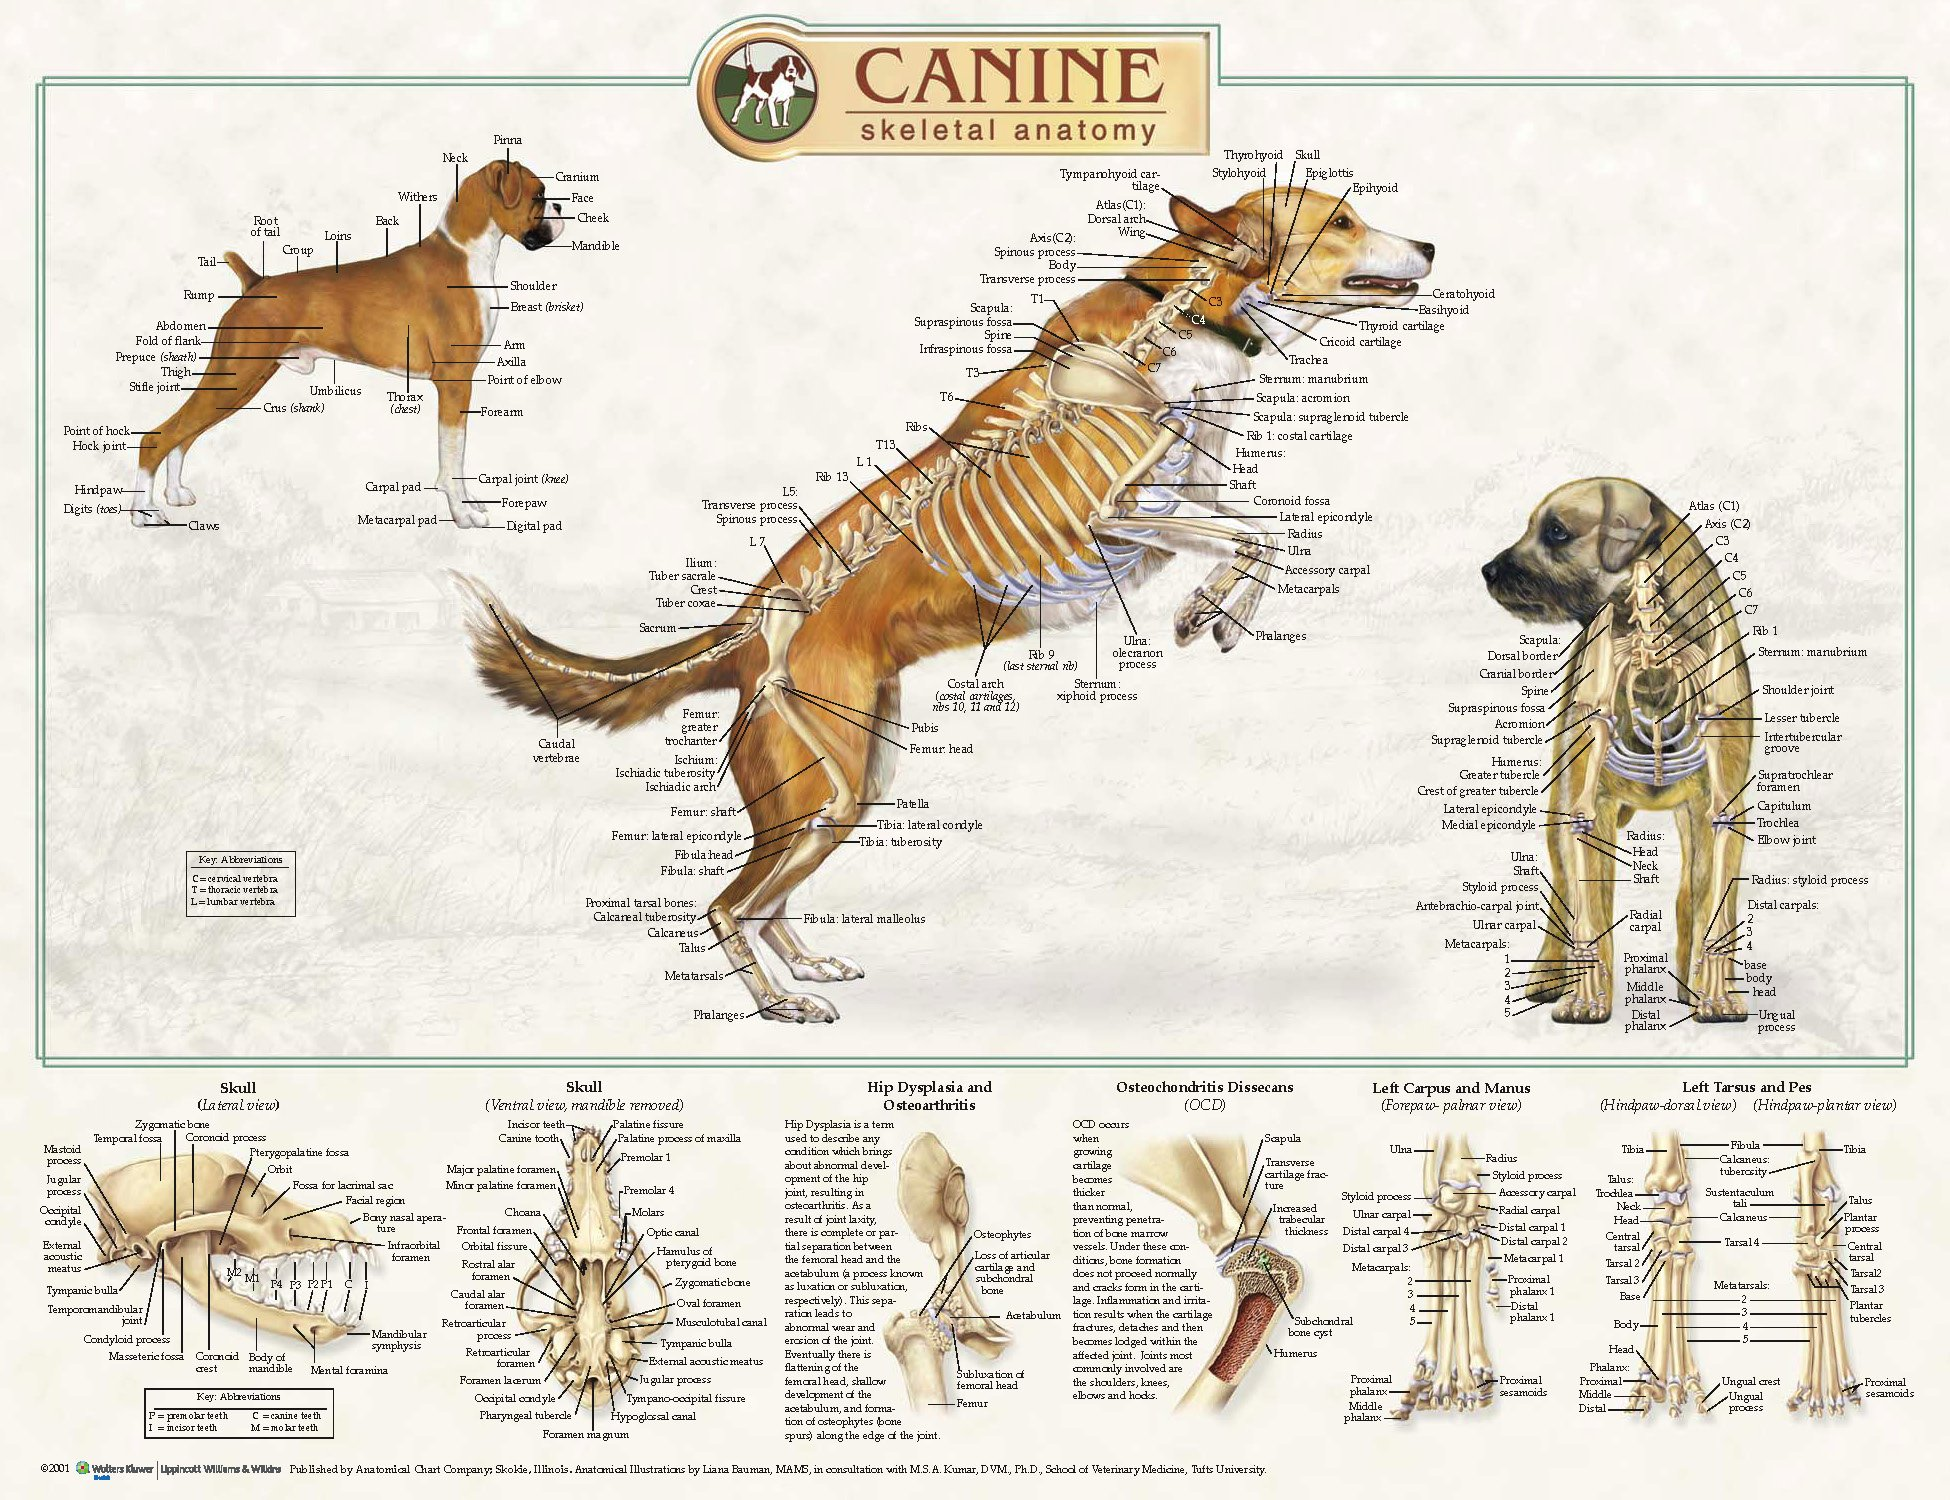 Canine Skeletal Anatomy Laminated Wallchart [Poster]: Amazon.co.uk ...